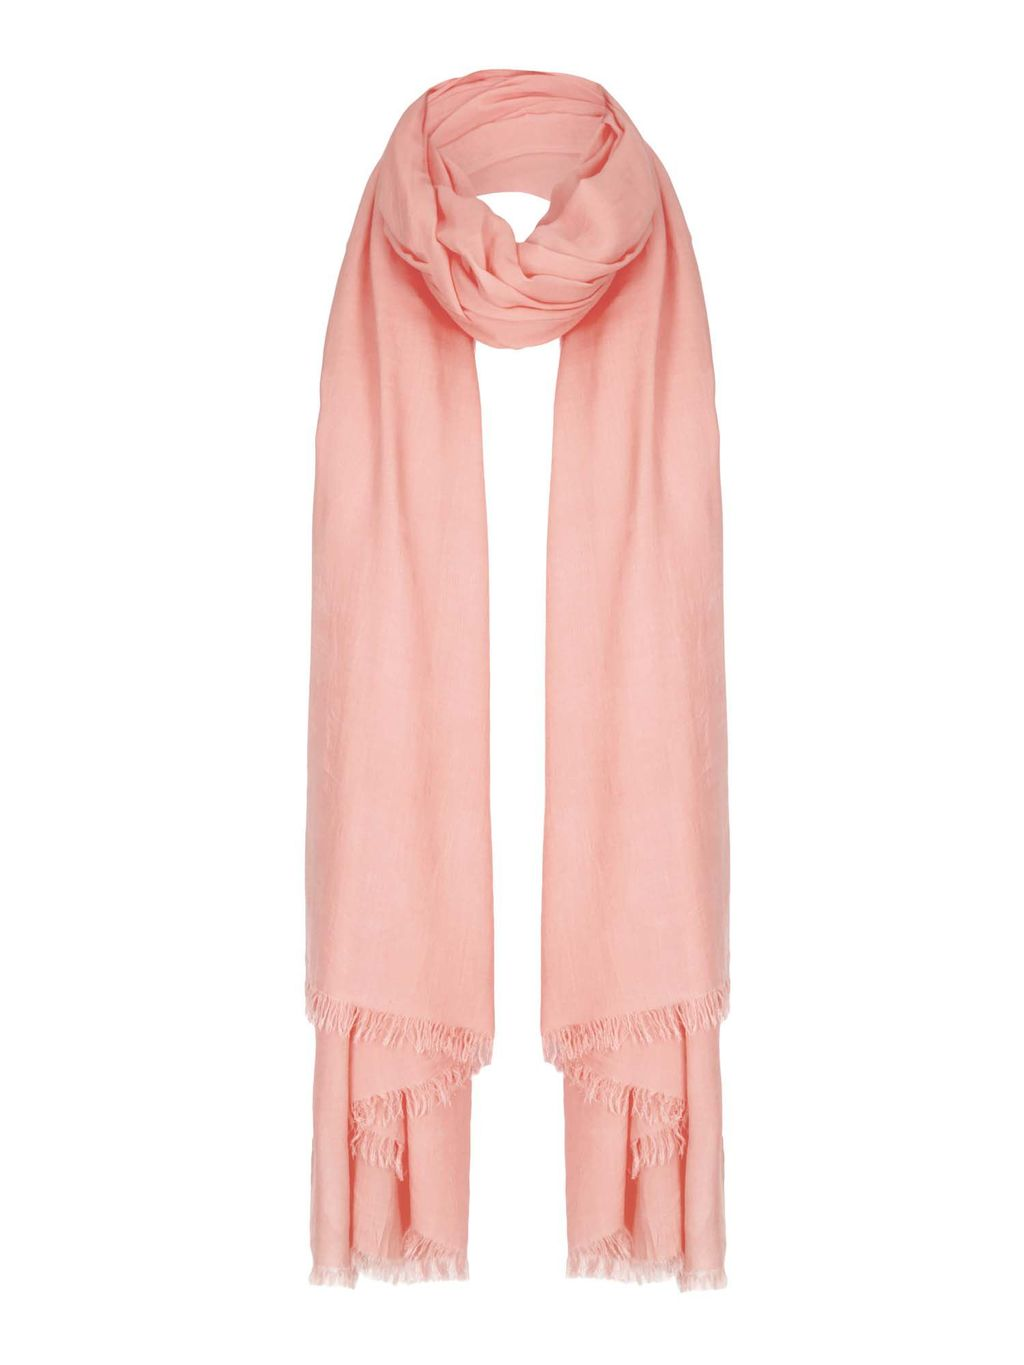 Pastel Scarf, Pink - predominant colour: pink; occasions: casual; type of pattern: standard; style: regular; size: standard; material: fabric; pattern: plain; season: s/s 2016; wardrobe: highlight